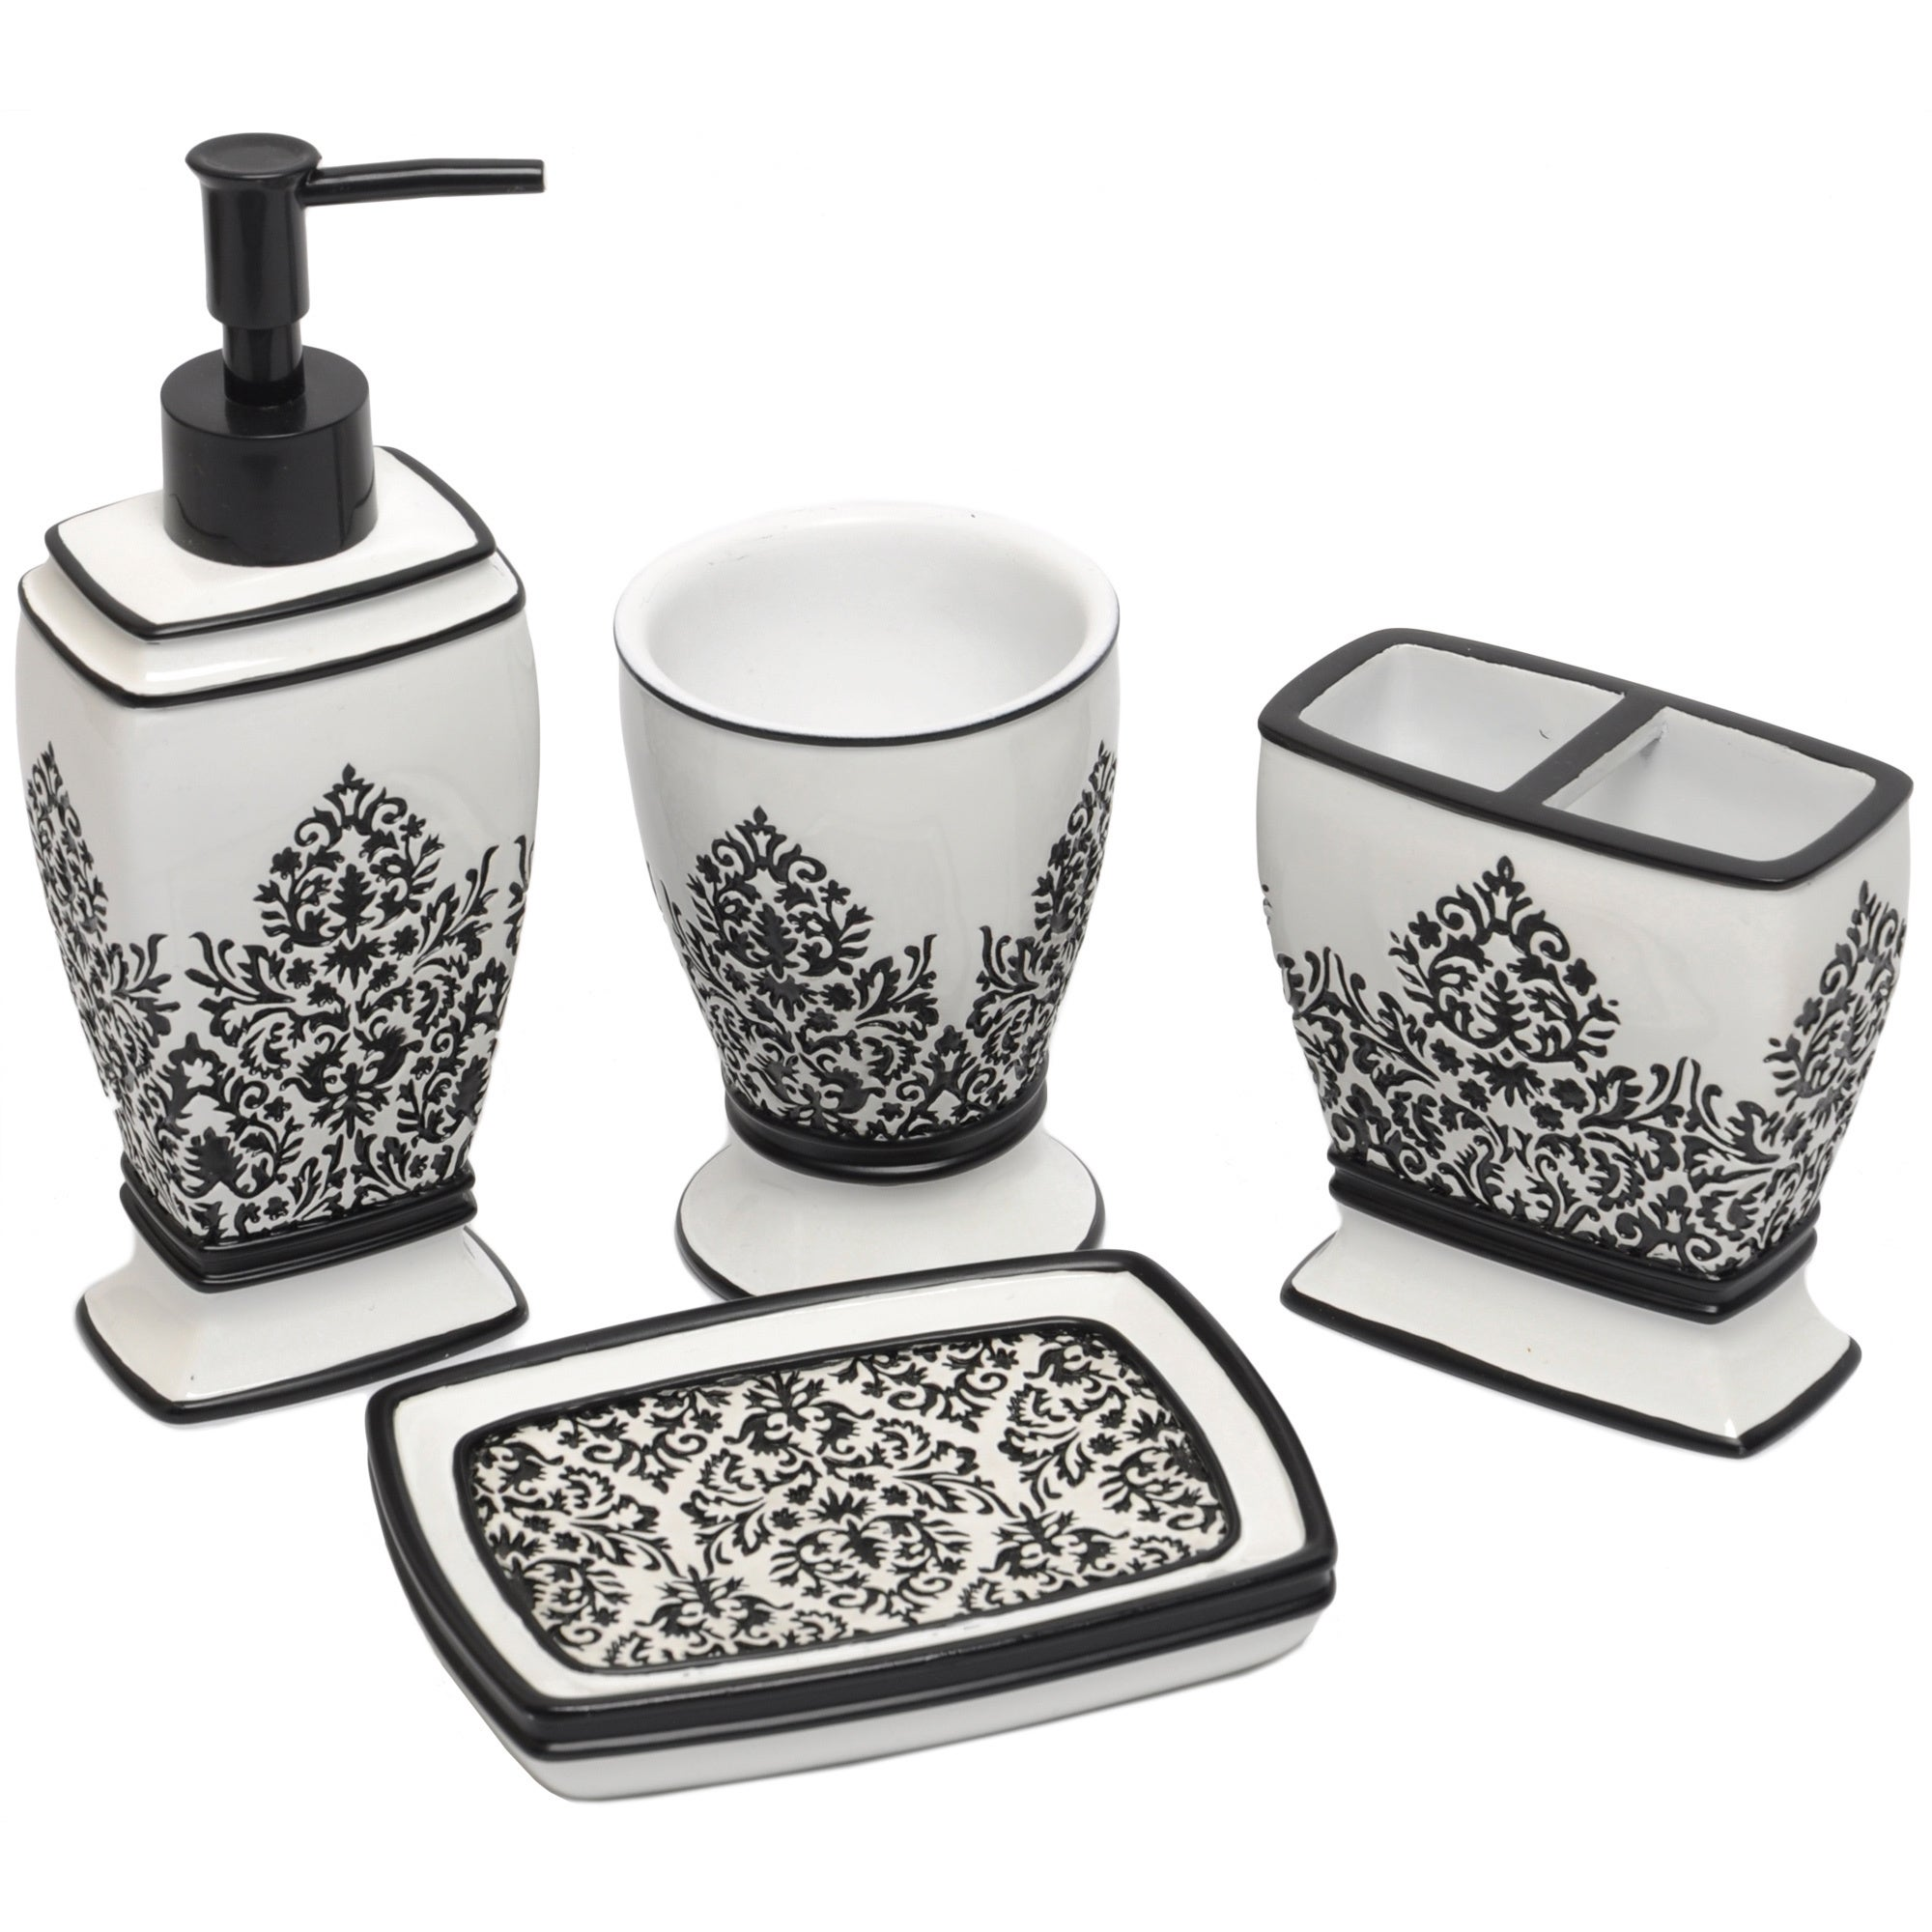 Black white damask bath accessory 4 piece set overstock for Black bathroom ensembles